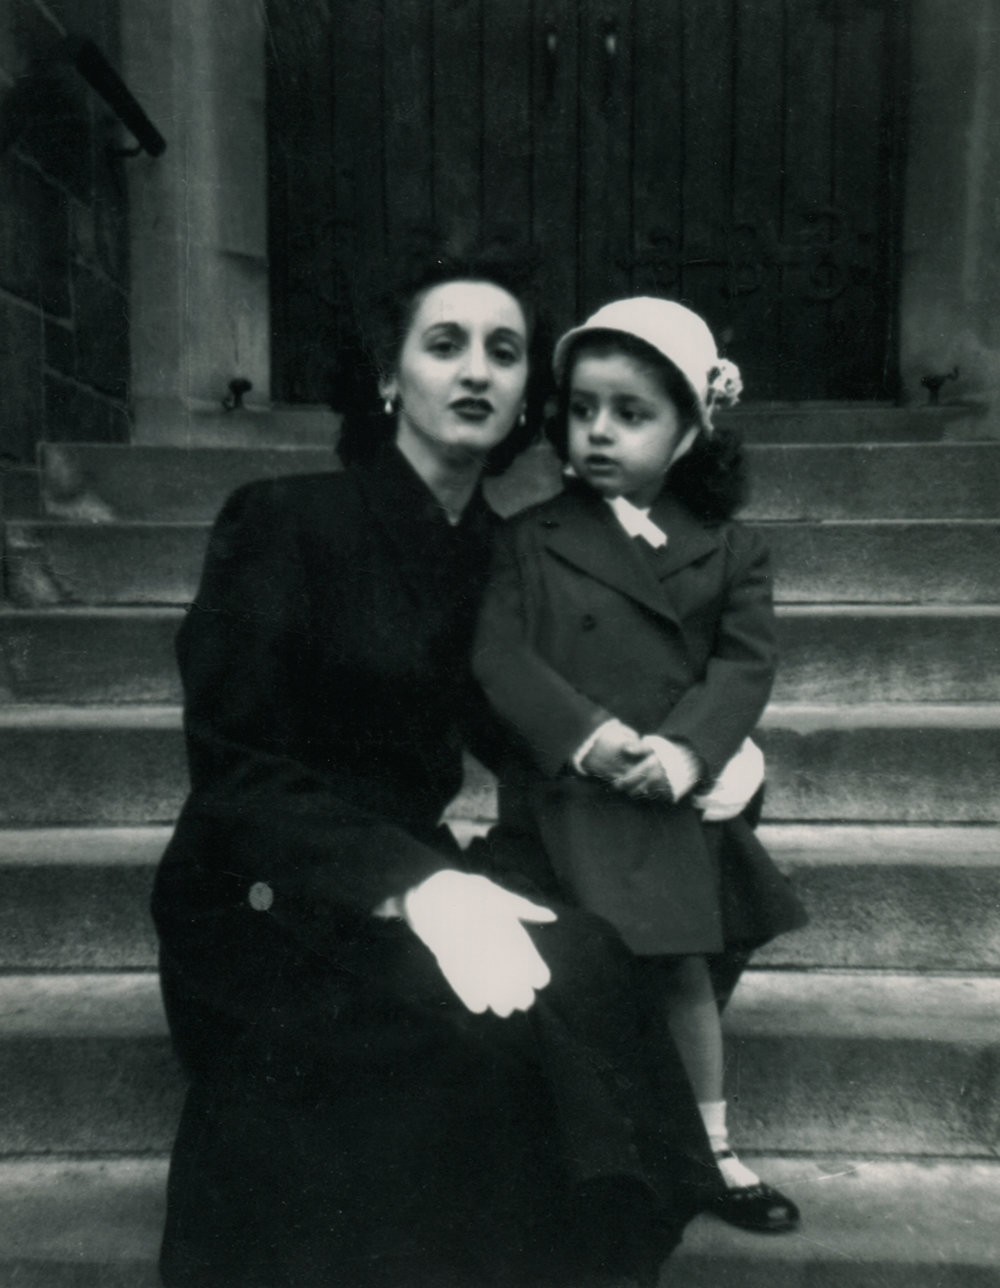 Mary Ann as a little girl with her mother in the Bronx.